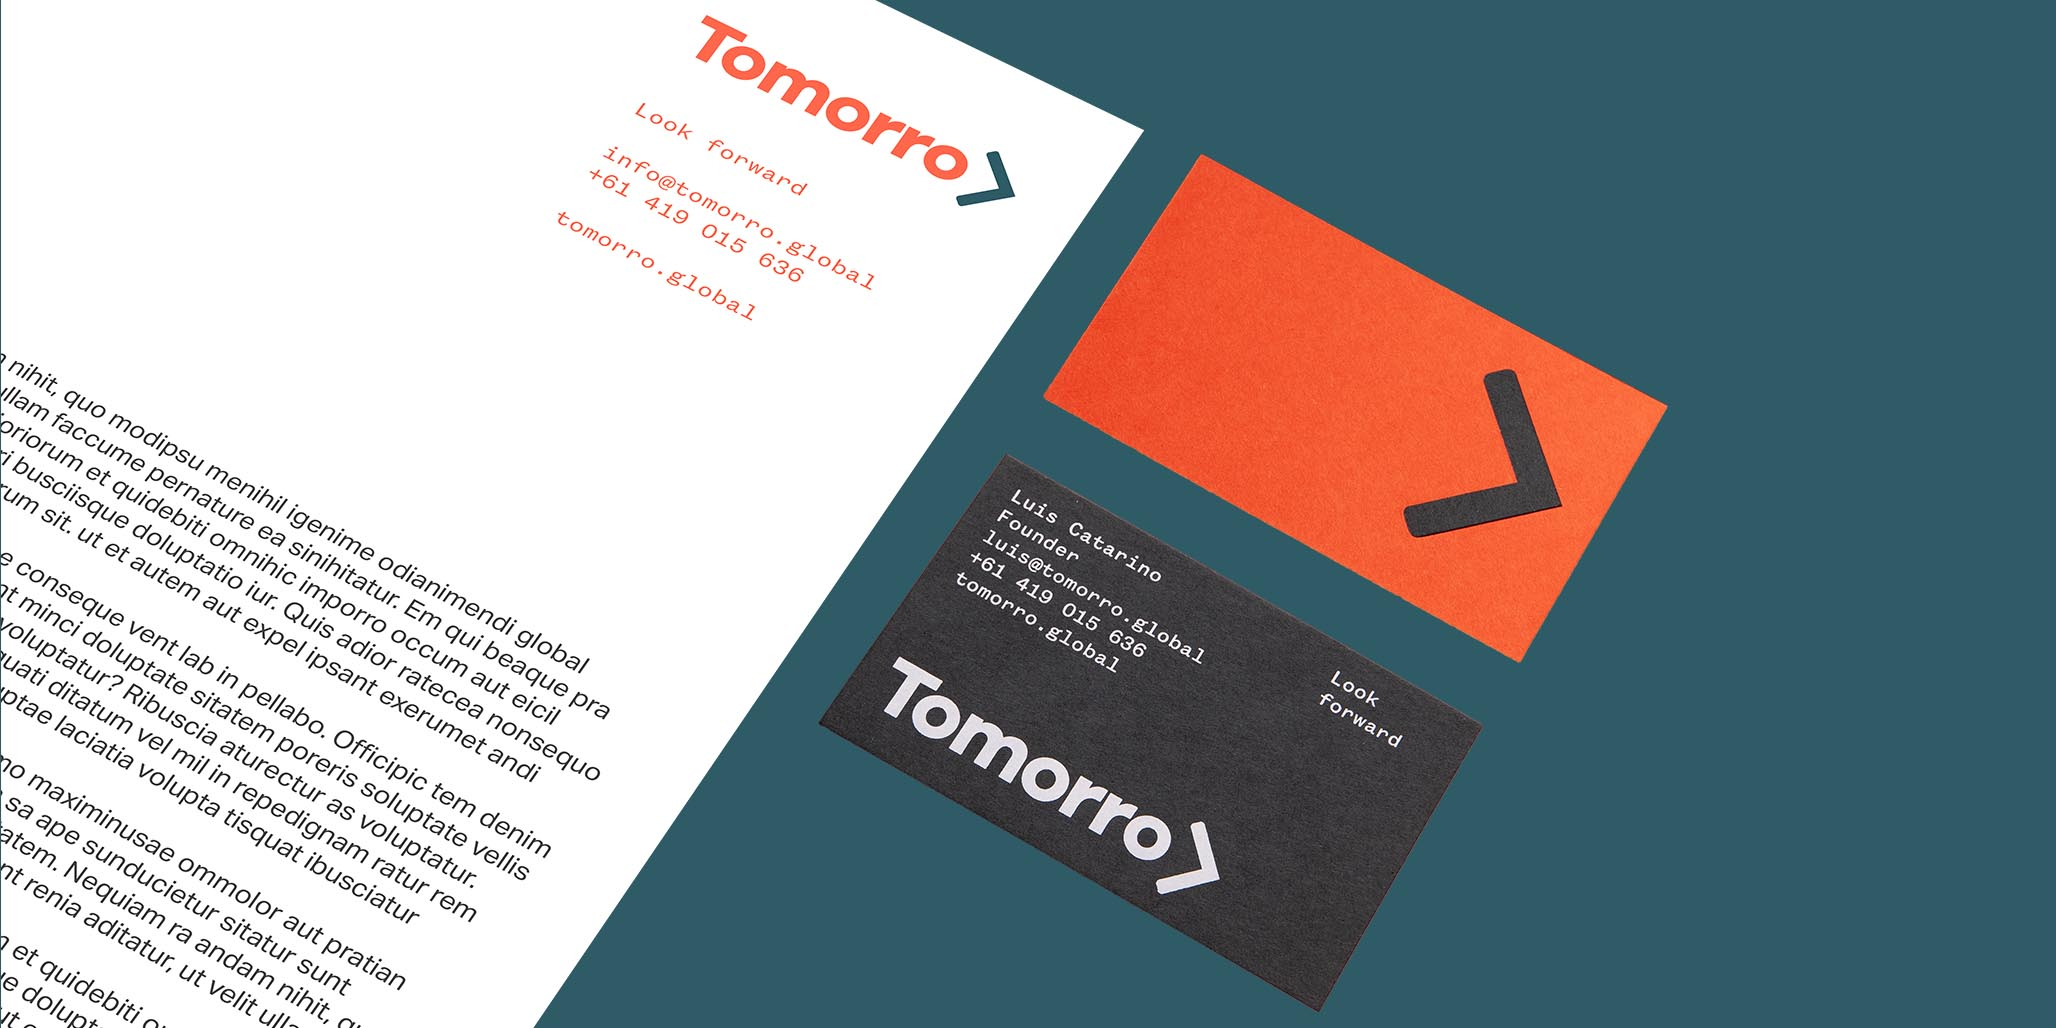 Company Naming & Brand Identity for tech start-up by the Percept Brand Agency, image H